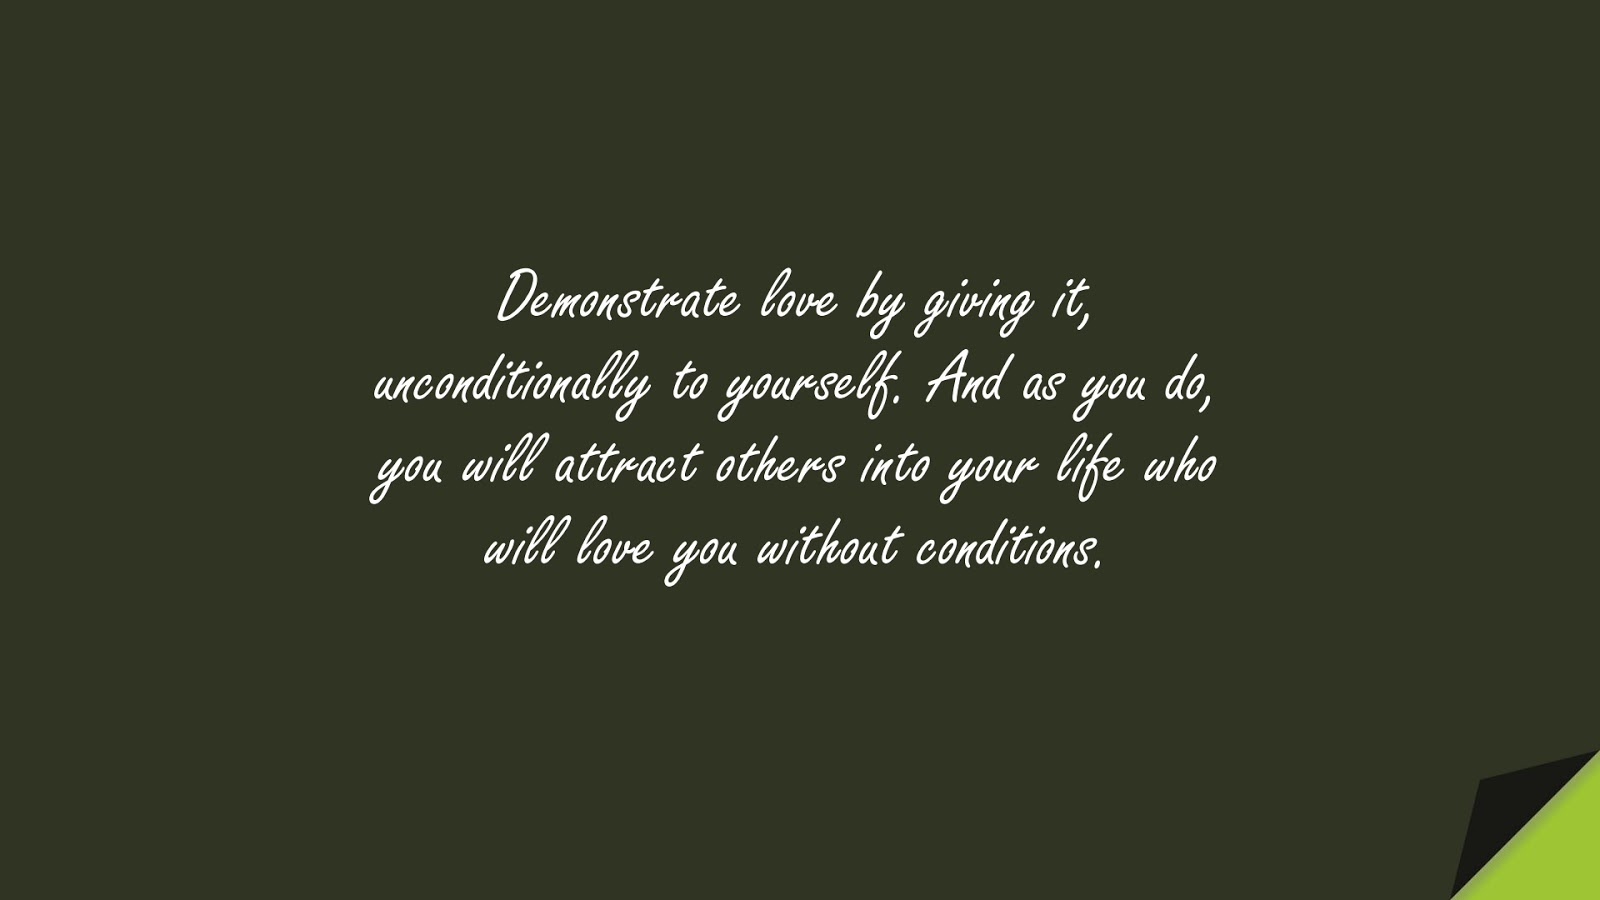 Demonstrate love by giving it, unconditionally to yourself. And as you do, you will attract others into your life who will love you without conditions.FALSE